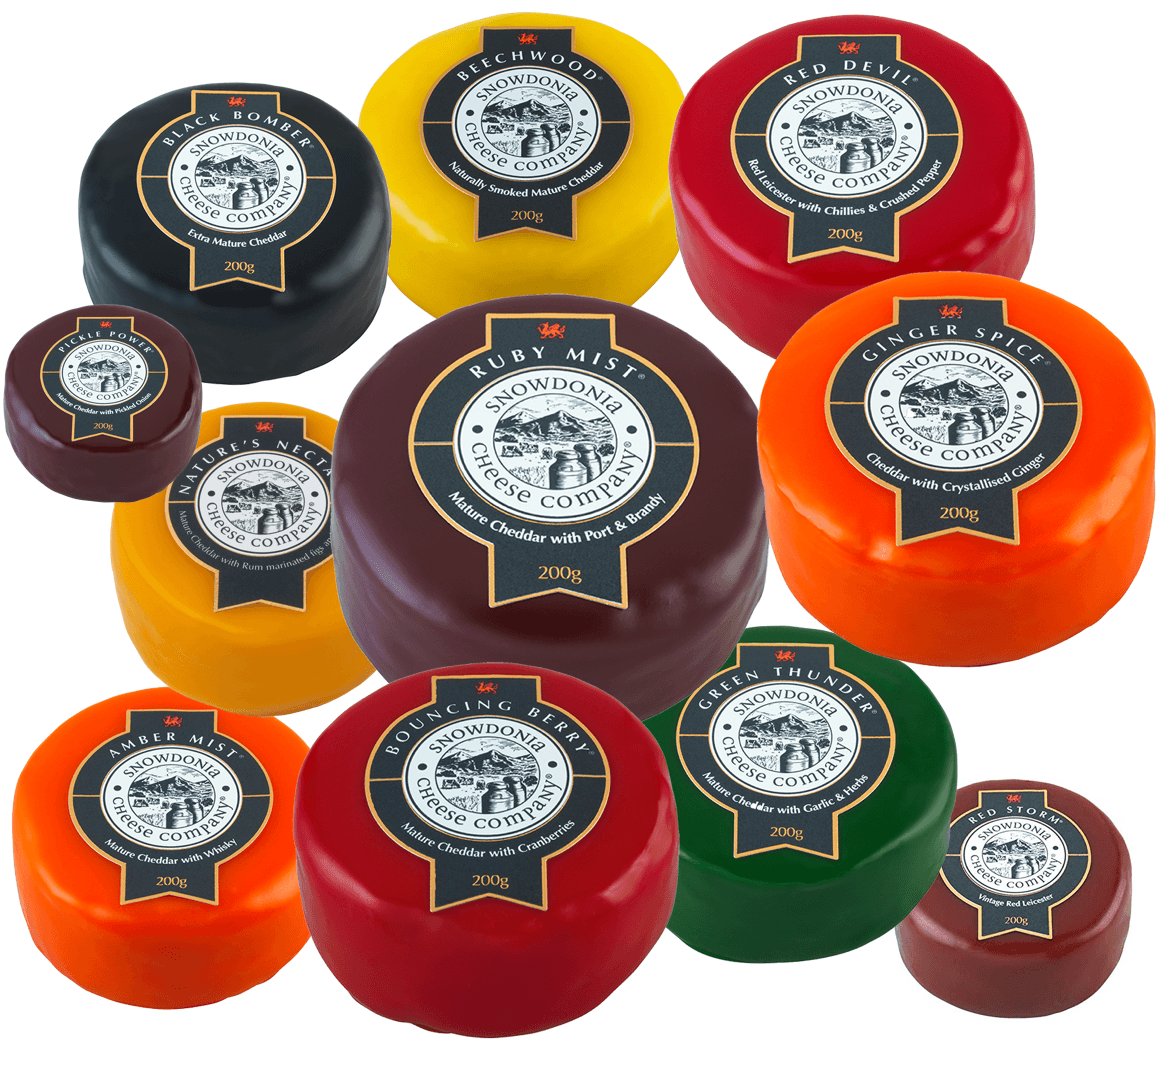 Snowdonia Bouncing Berry 200g - Celebration Cheeses